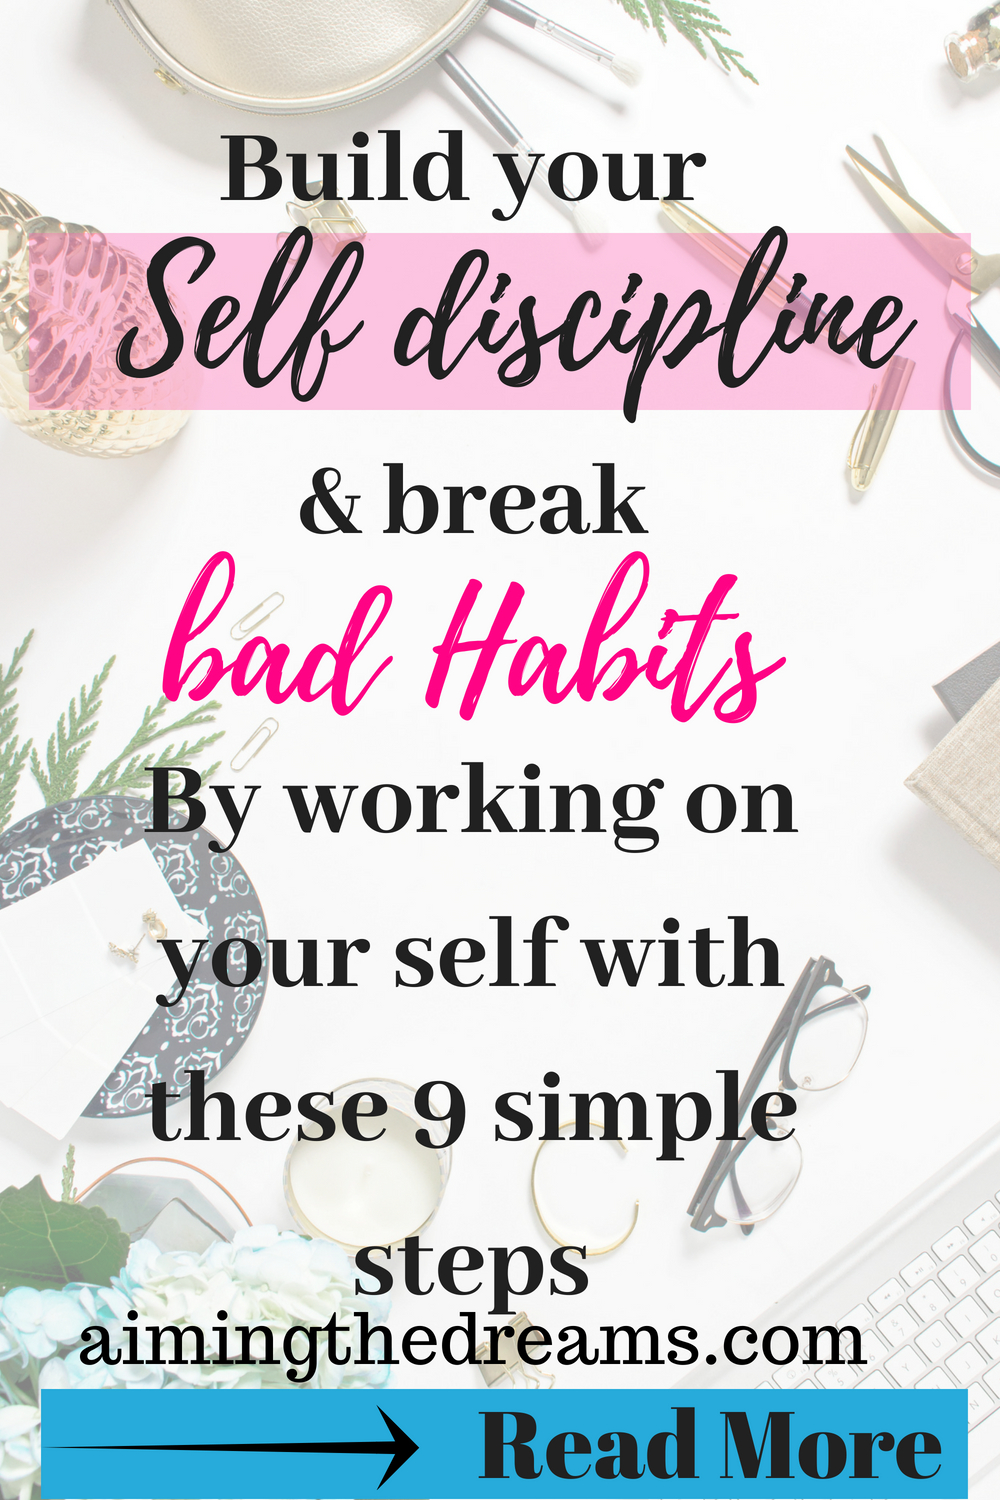 break bad habits by regularly working on them and replacing with good habits.